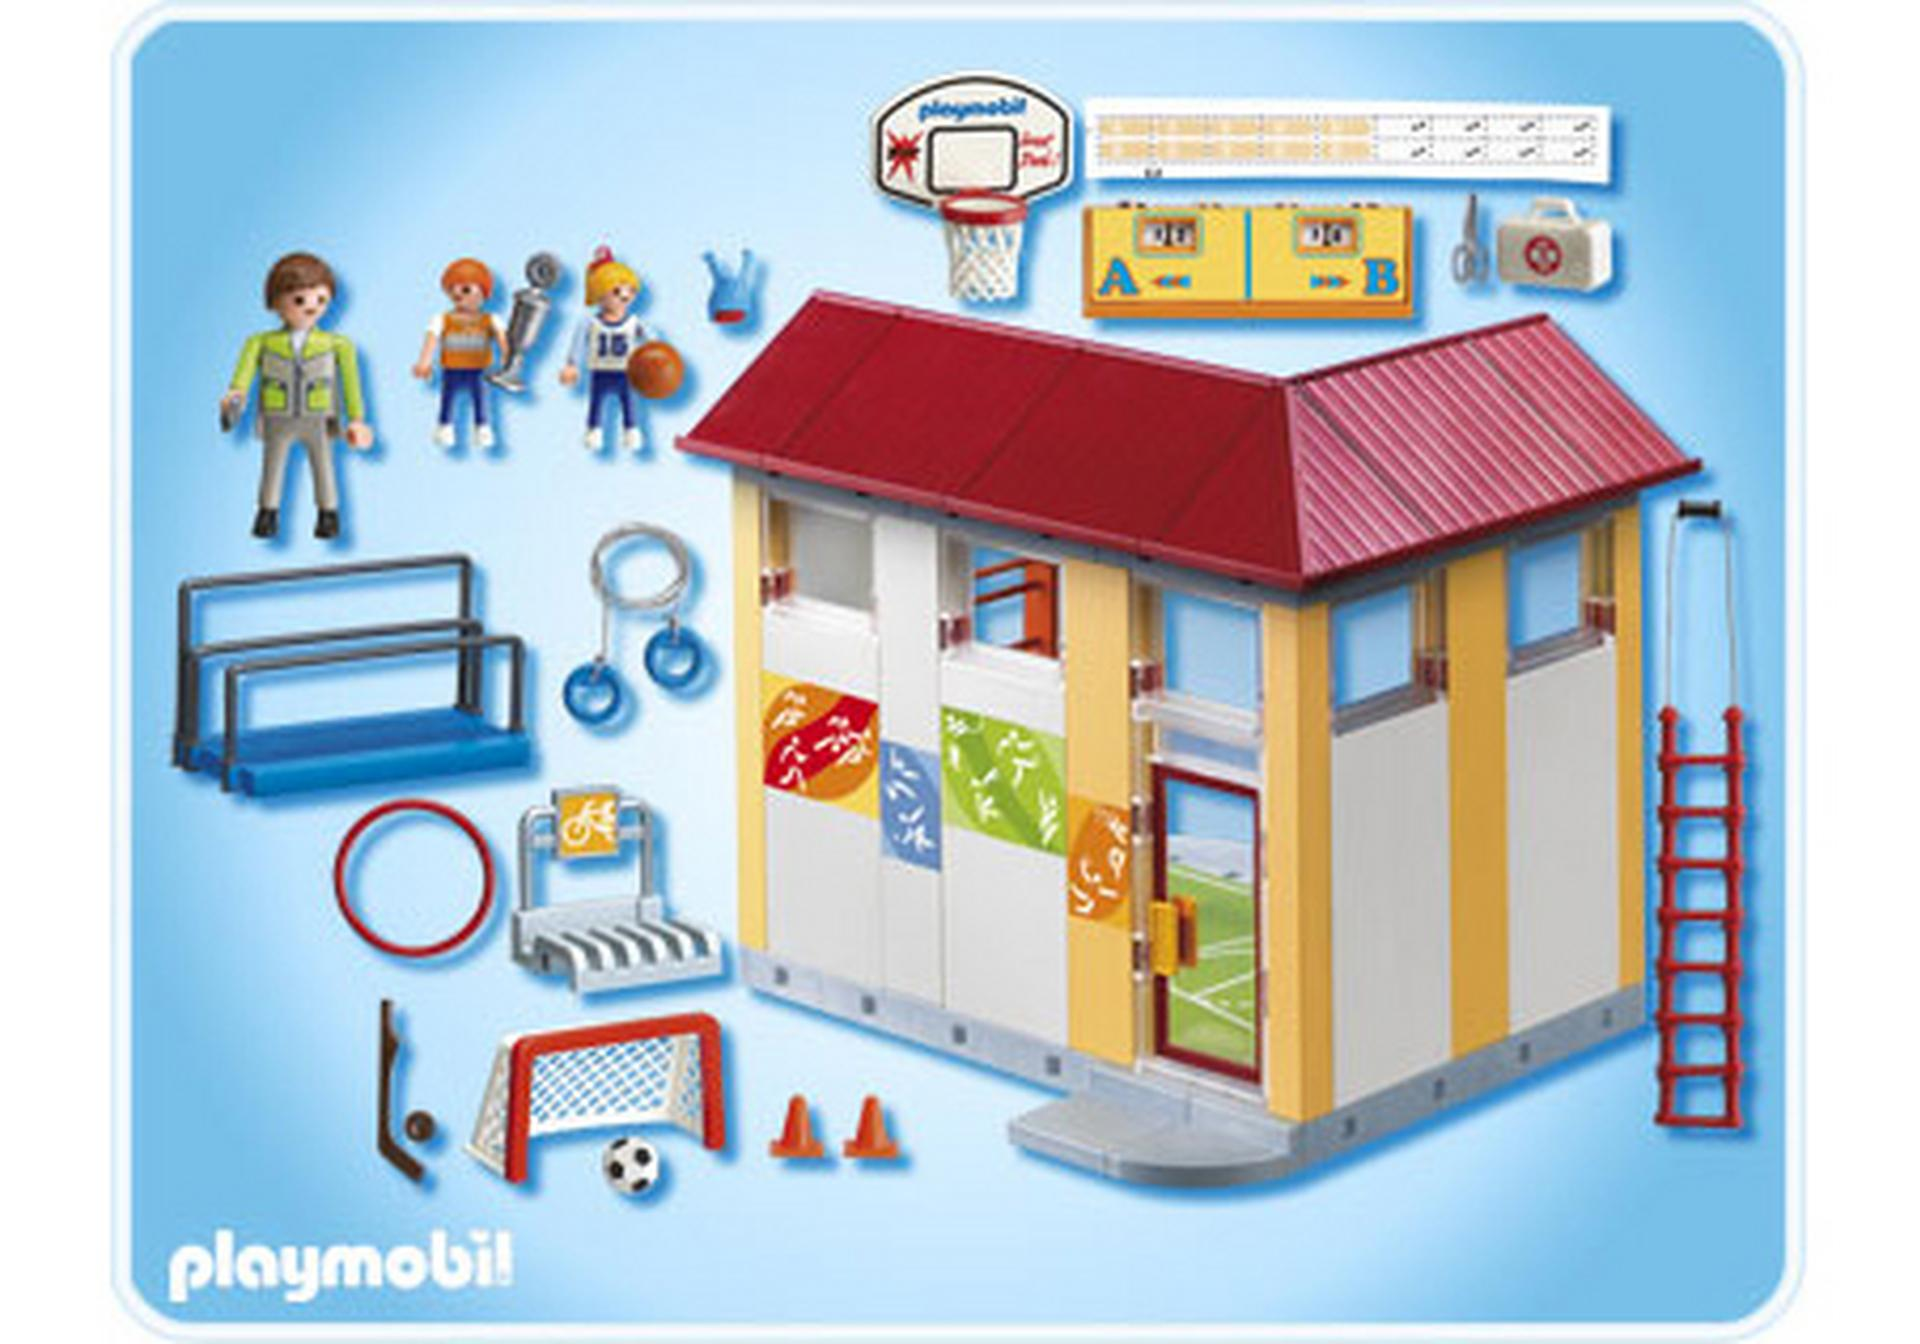 Playmobil salle de sport 28 images playmobil set 3969 for Piscine playmobil